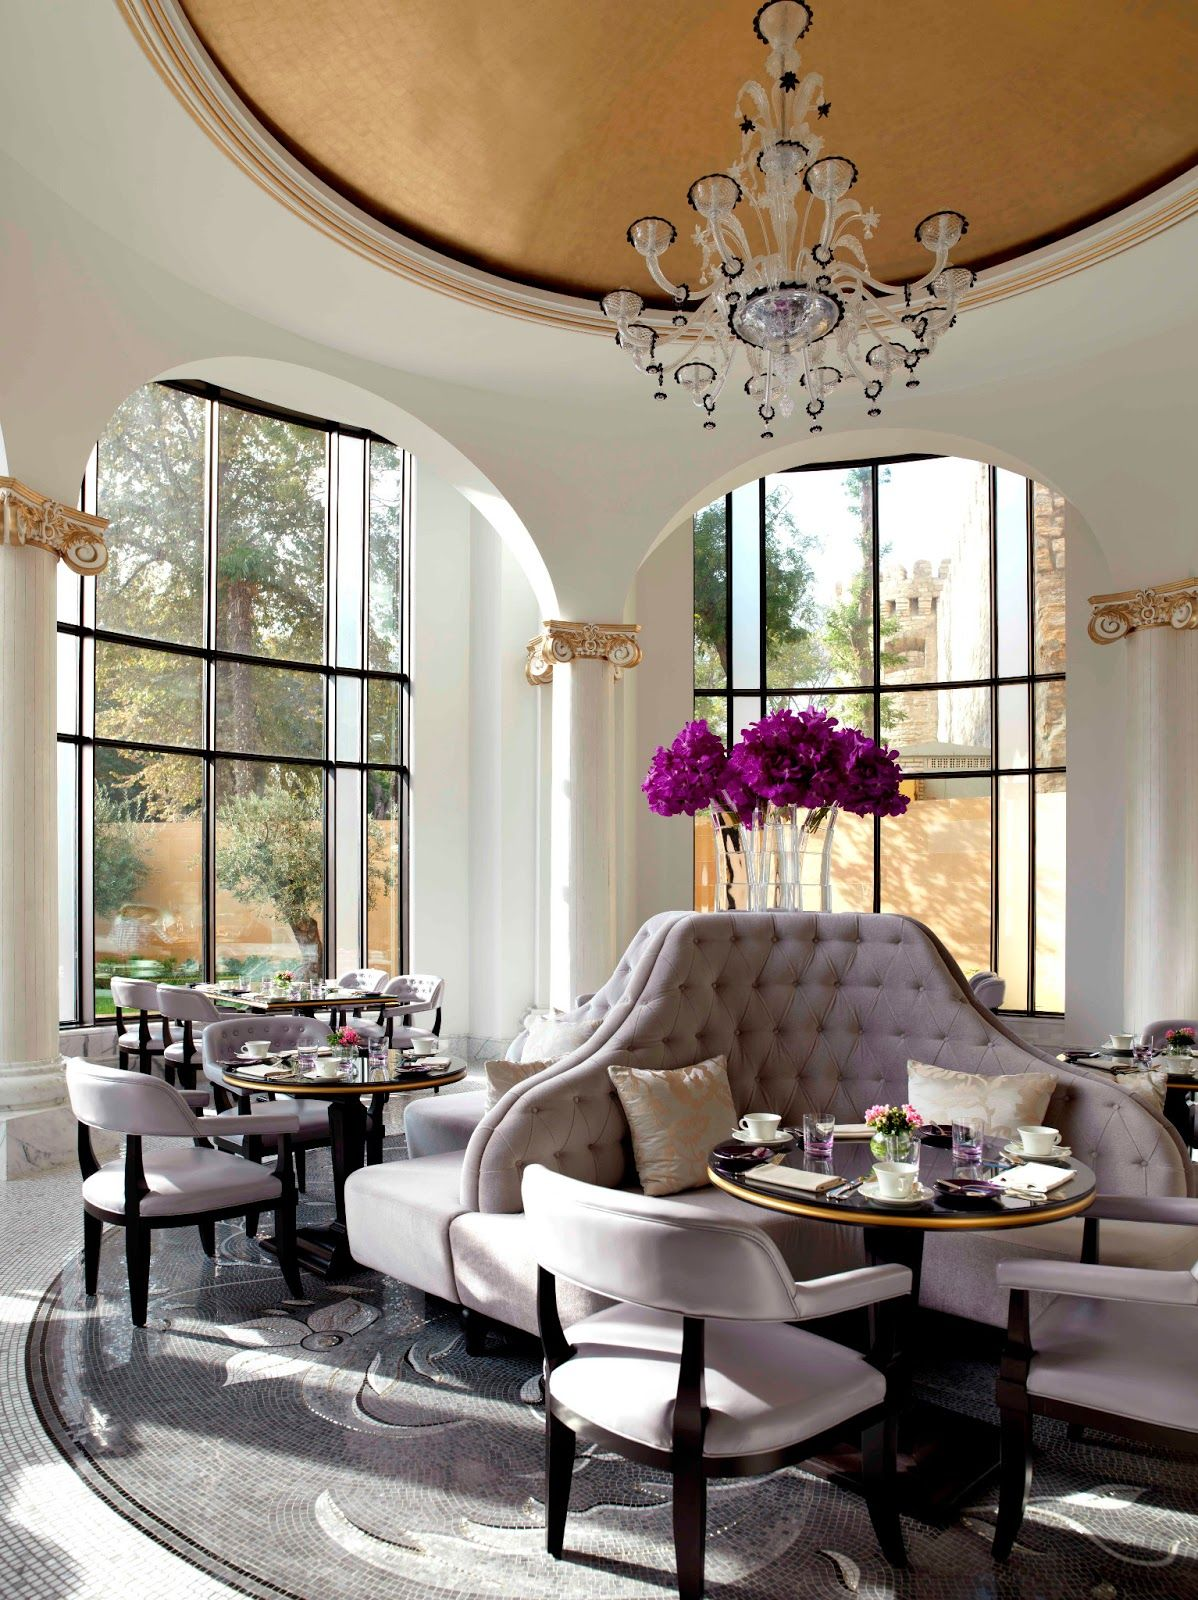 Hotel Rooms Interior Design: Four Seasons Hotels Unveil New Property In Baku